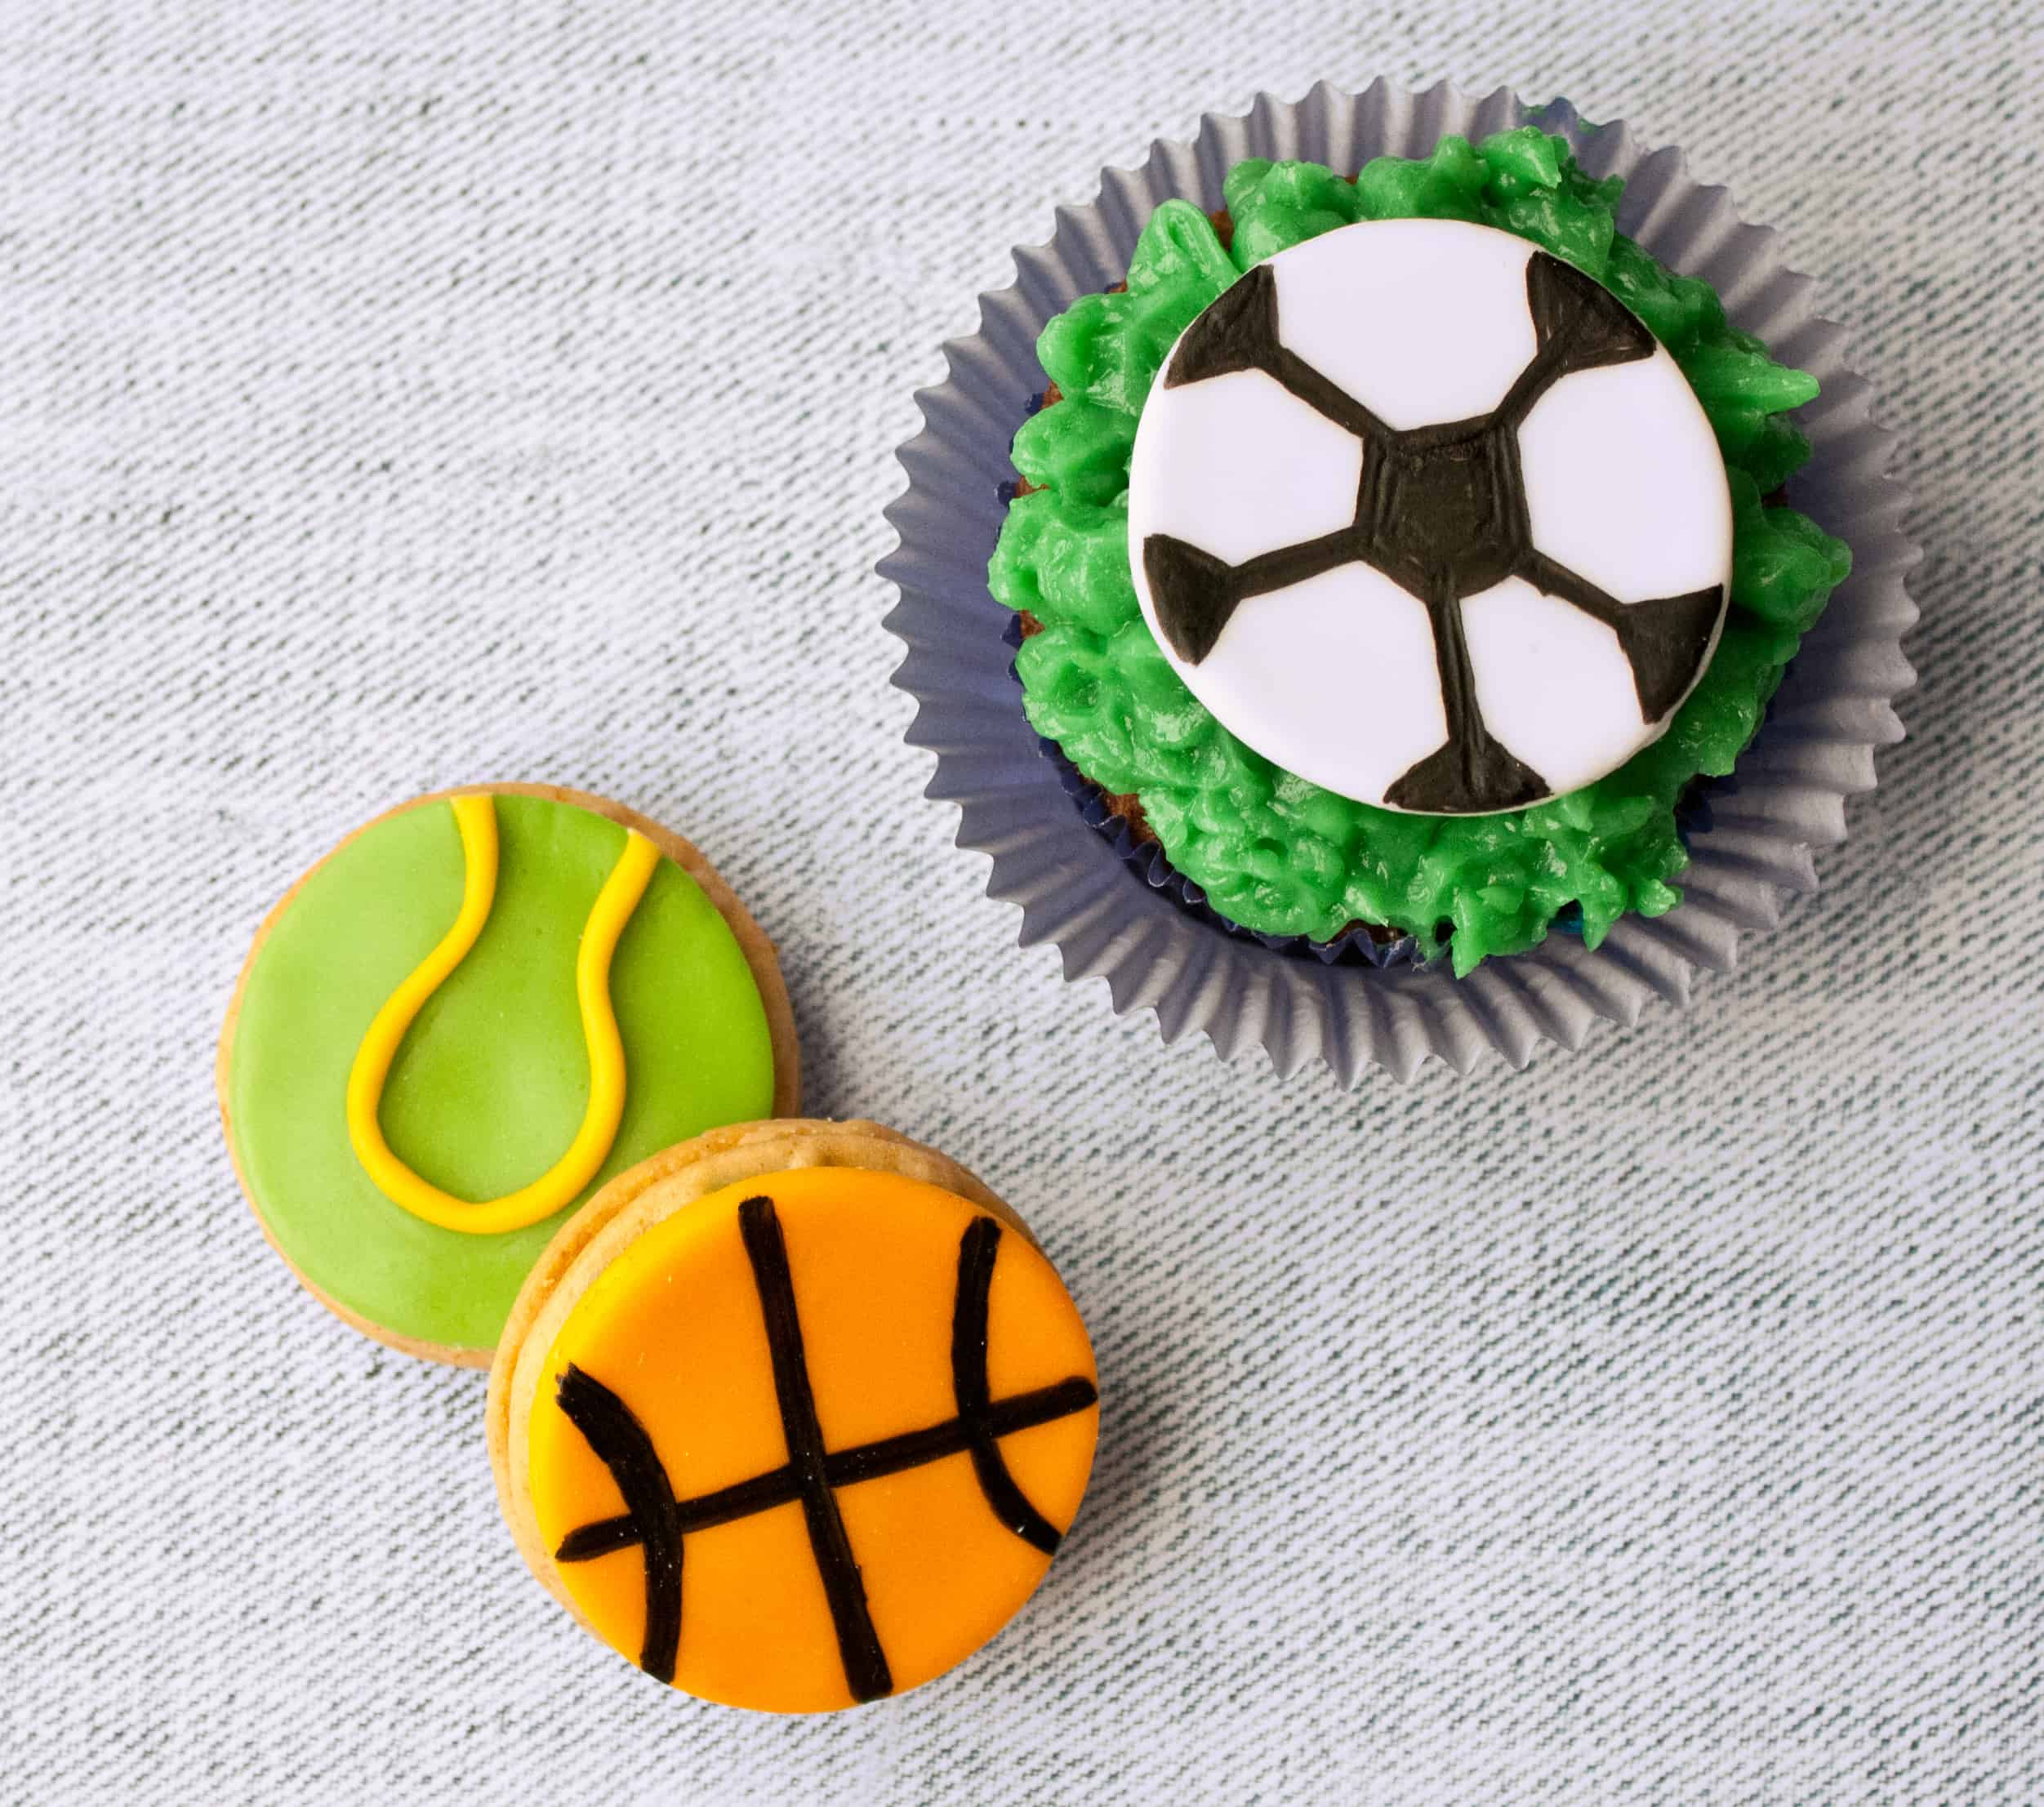 Part 1: How to make fondant basketball, tennis, & soccer balls